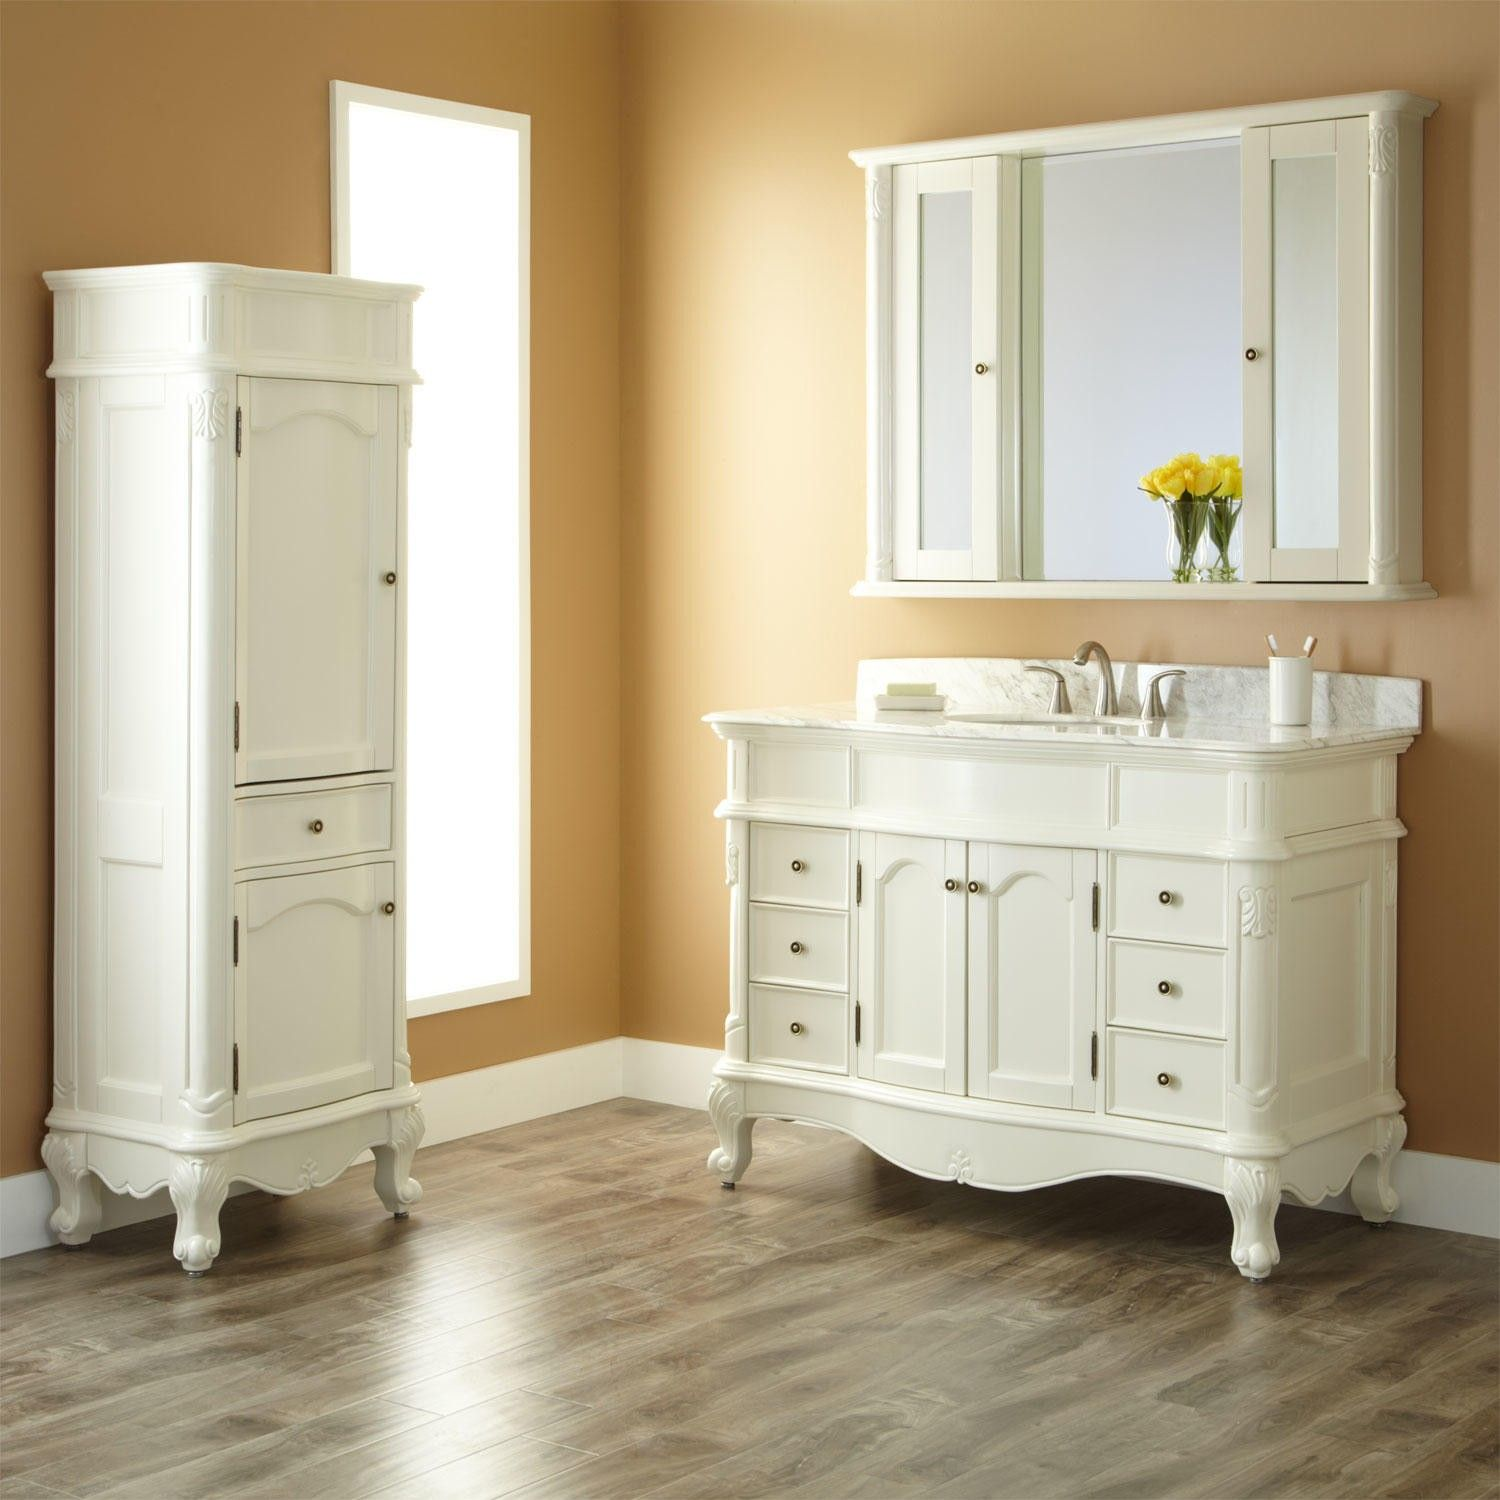 48 Sedwick Creamy White Vanity With Carrara Marble Top Medicine Cabinet And Linen